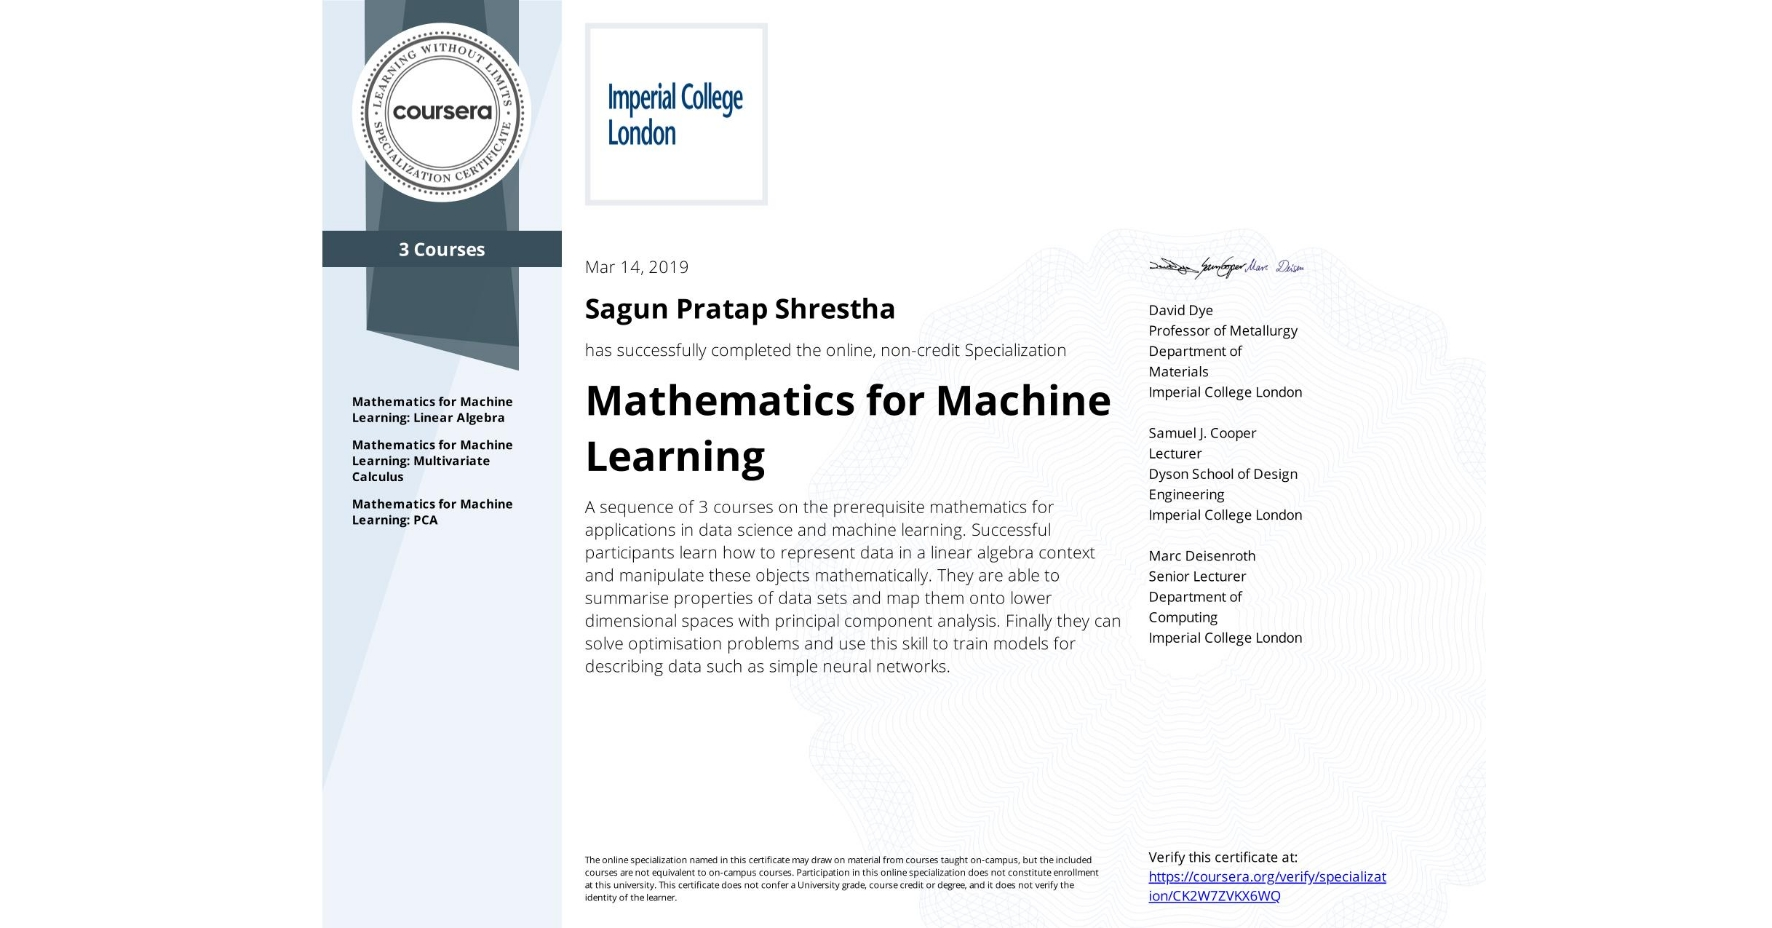 View certificate for Sagun Pratap Shrestha, Mathematics for Machine Learning, offered through Coursera. A sequence of 3 courses on the prerequisite mathematics for applications in data science and machine learning.   Successful participants learn how to represent data in a linear algebra context and manipulate these objects mathematically. They are able to summarise properties of data sets and map them onto lower dimensional spaces with principal component analysis. Finally they can solve optimisation problems and use this skill to train models for describing data such as simple neural networks.